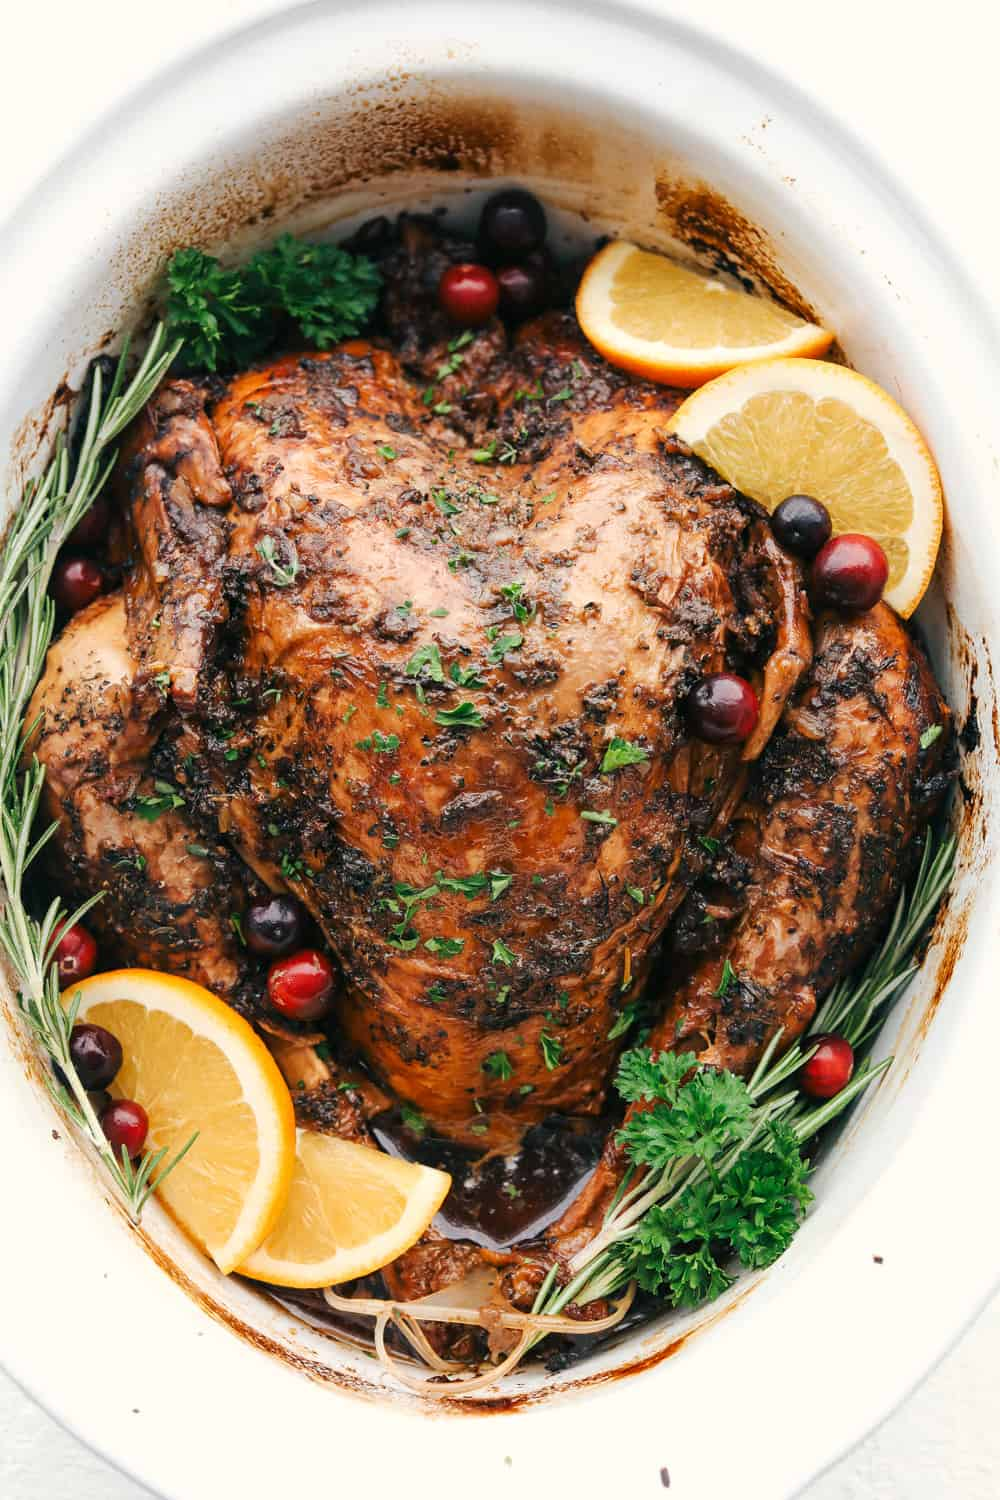 Turkey in a slow cooker.